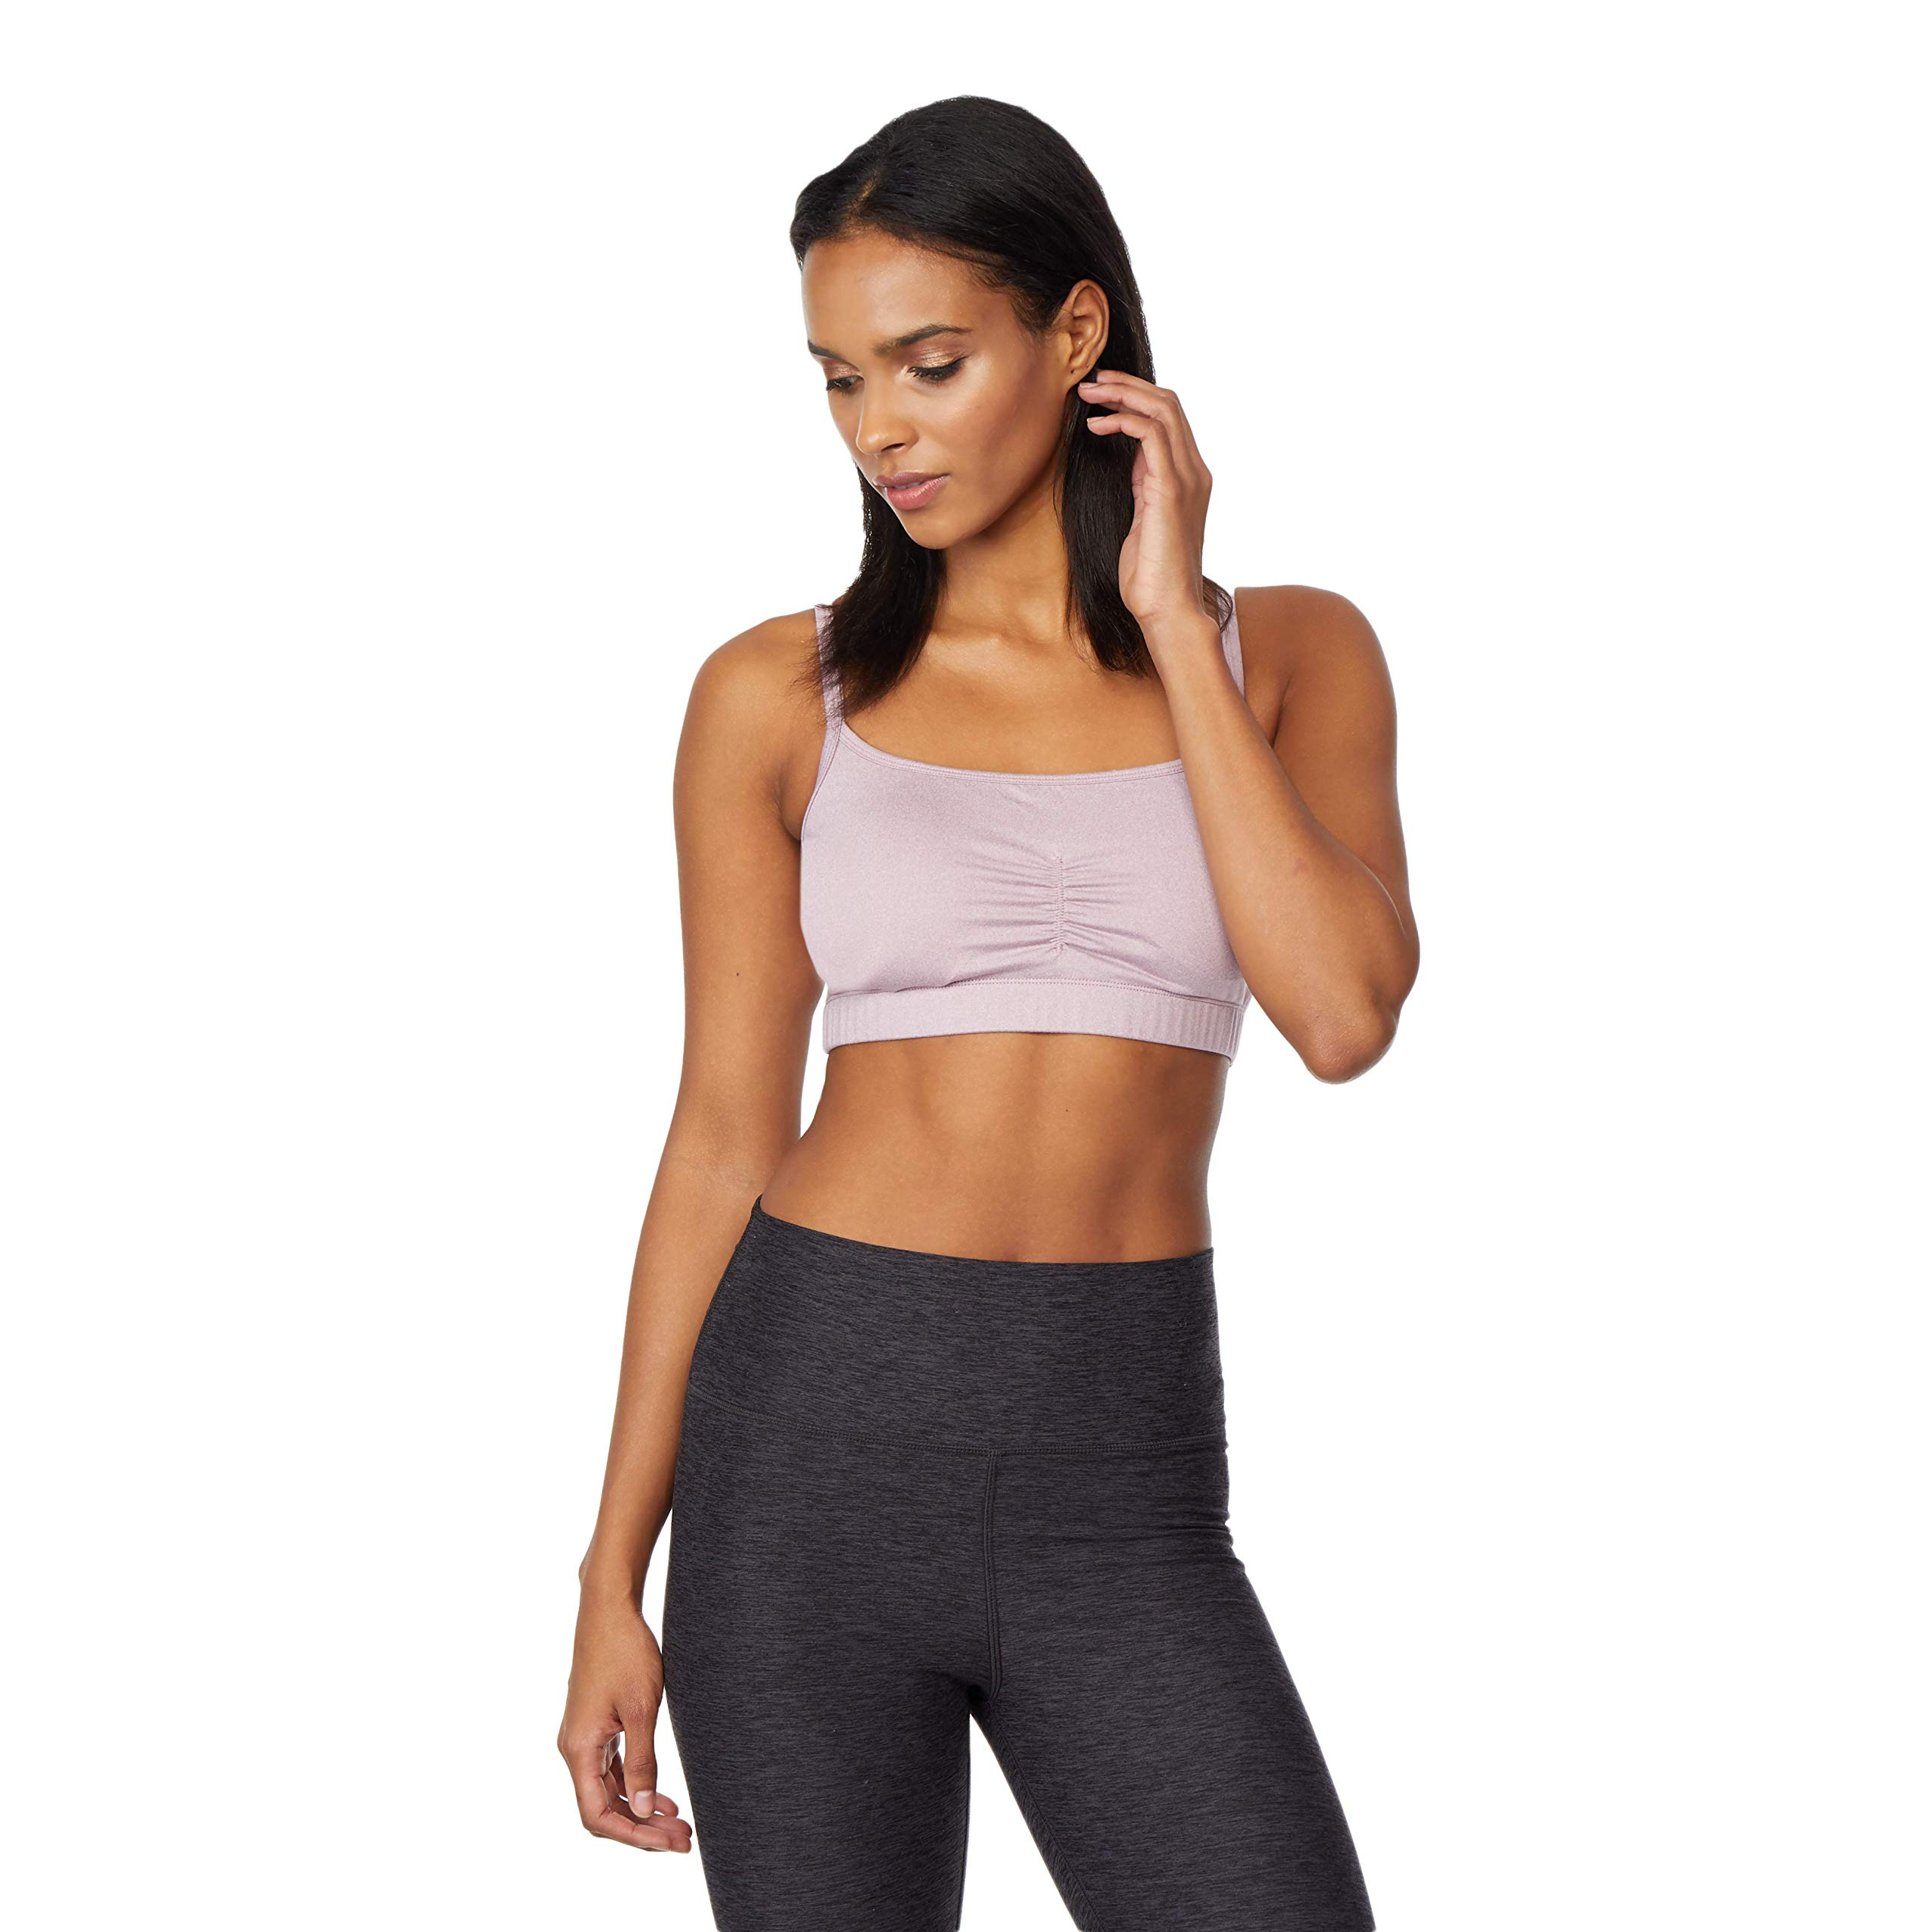 32 DEGREES Womens Cool Wicking Casual Sports Bralette